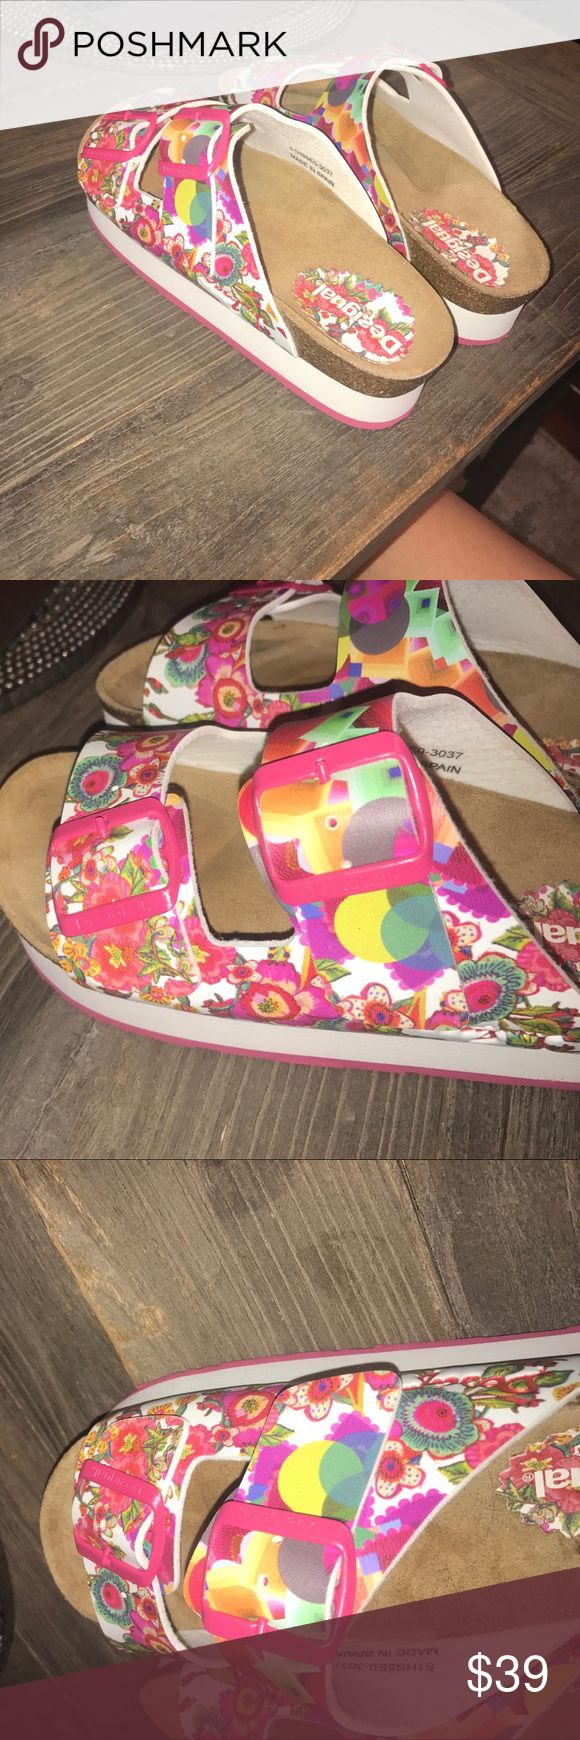 Desigual Floral Pink Tone Platform Slip On Sandal NWOT. NEVER WORN. This Desigual womens platform flip flop sandal is a 'must-have' for your Spring/Summer wardrobe. This elegant patterned sandal is perfect for the beach or pool. It is built for style and comfort with its gorgeous adjustable pink patterned signature strap and moulded foot bed. This sandal would lend itself brilliantly to any summer outfit. Desigual Shoes Sandals